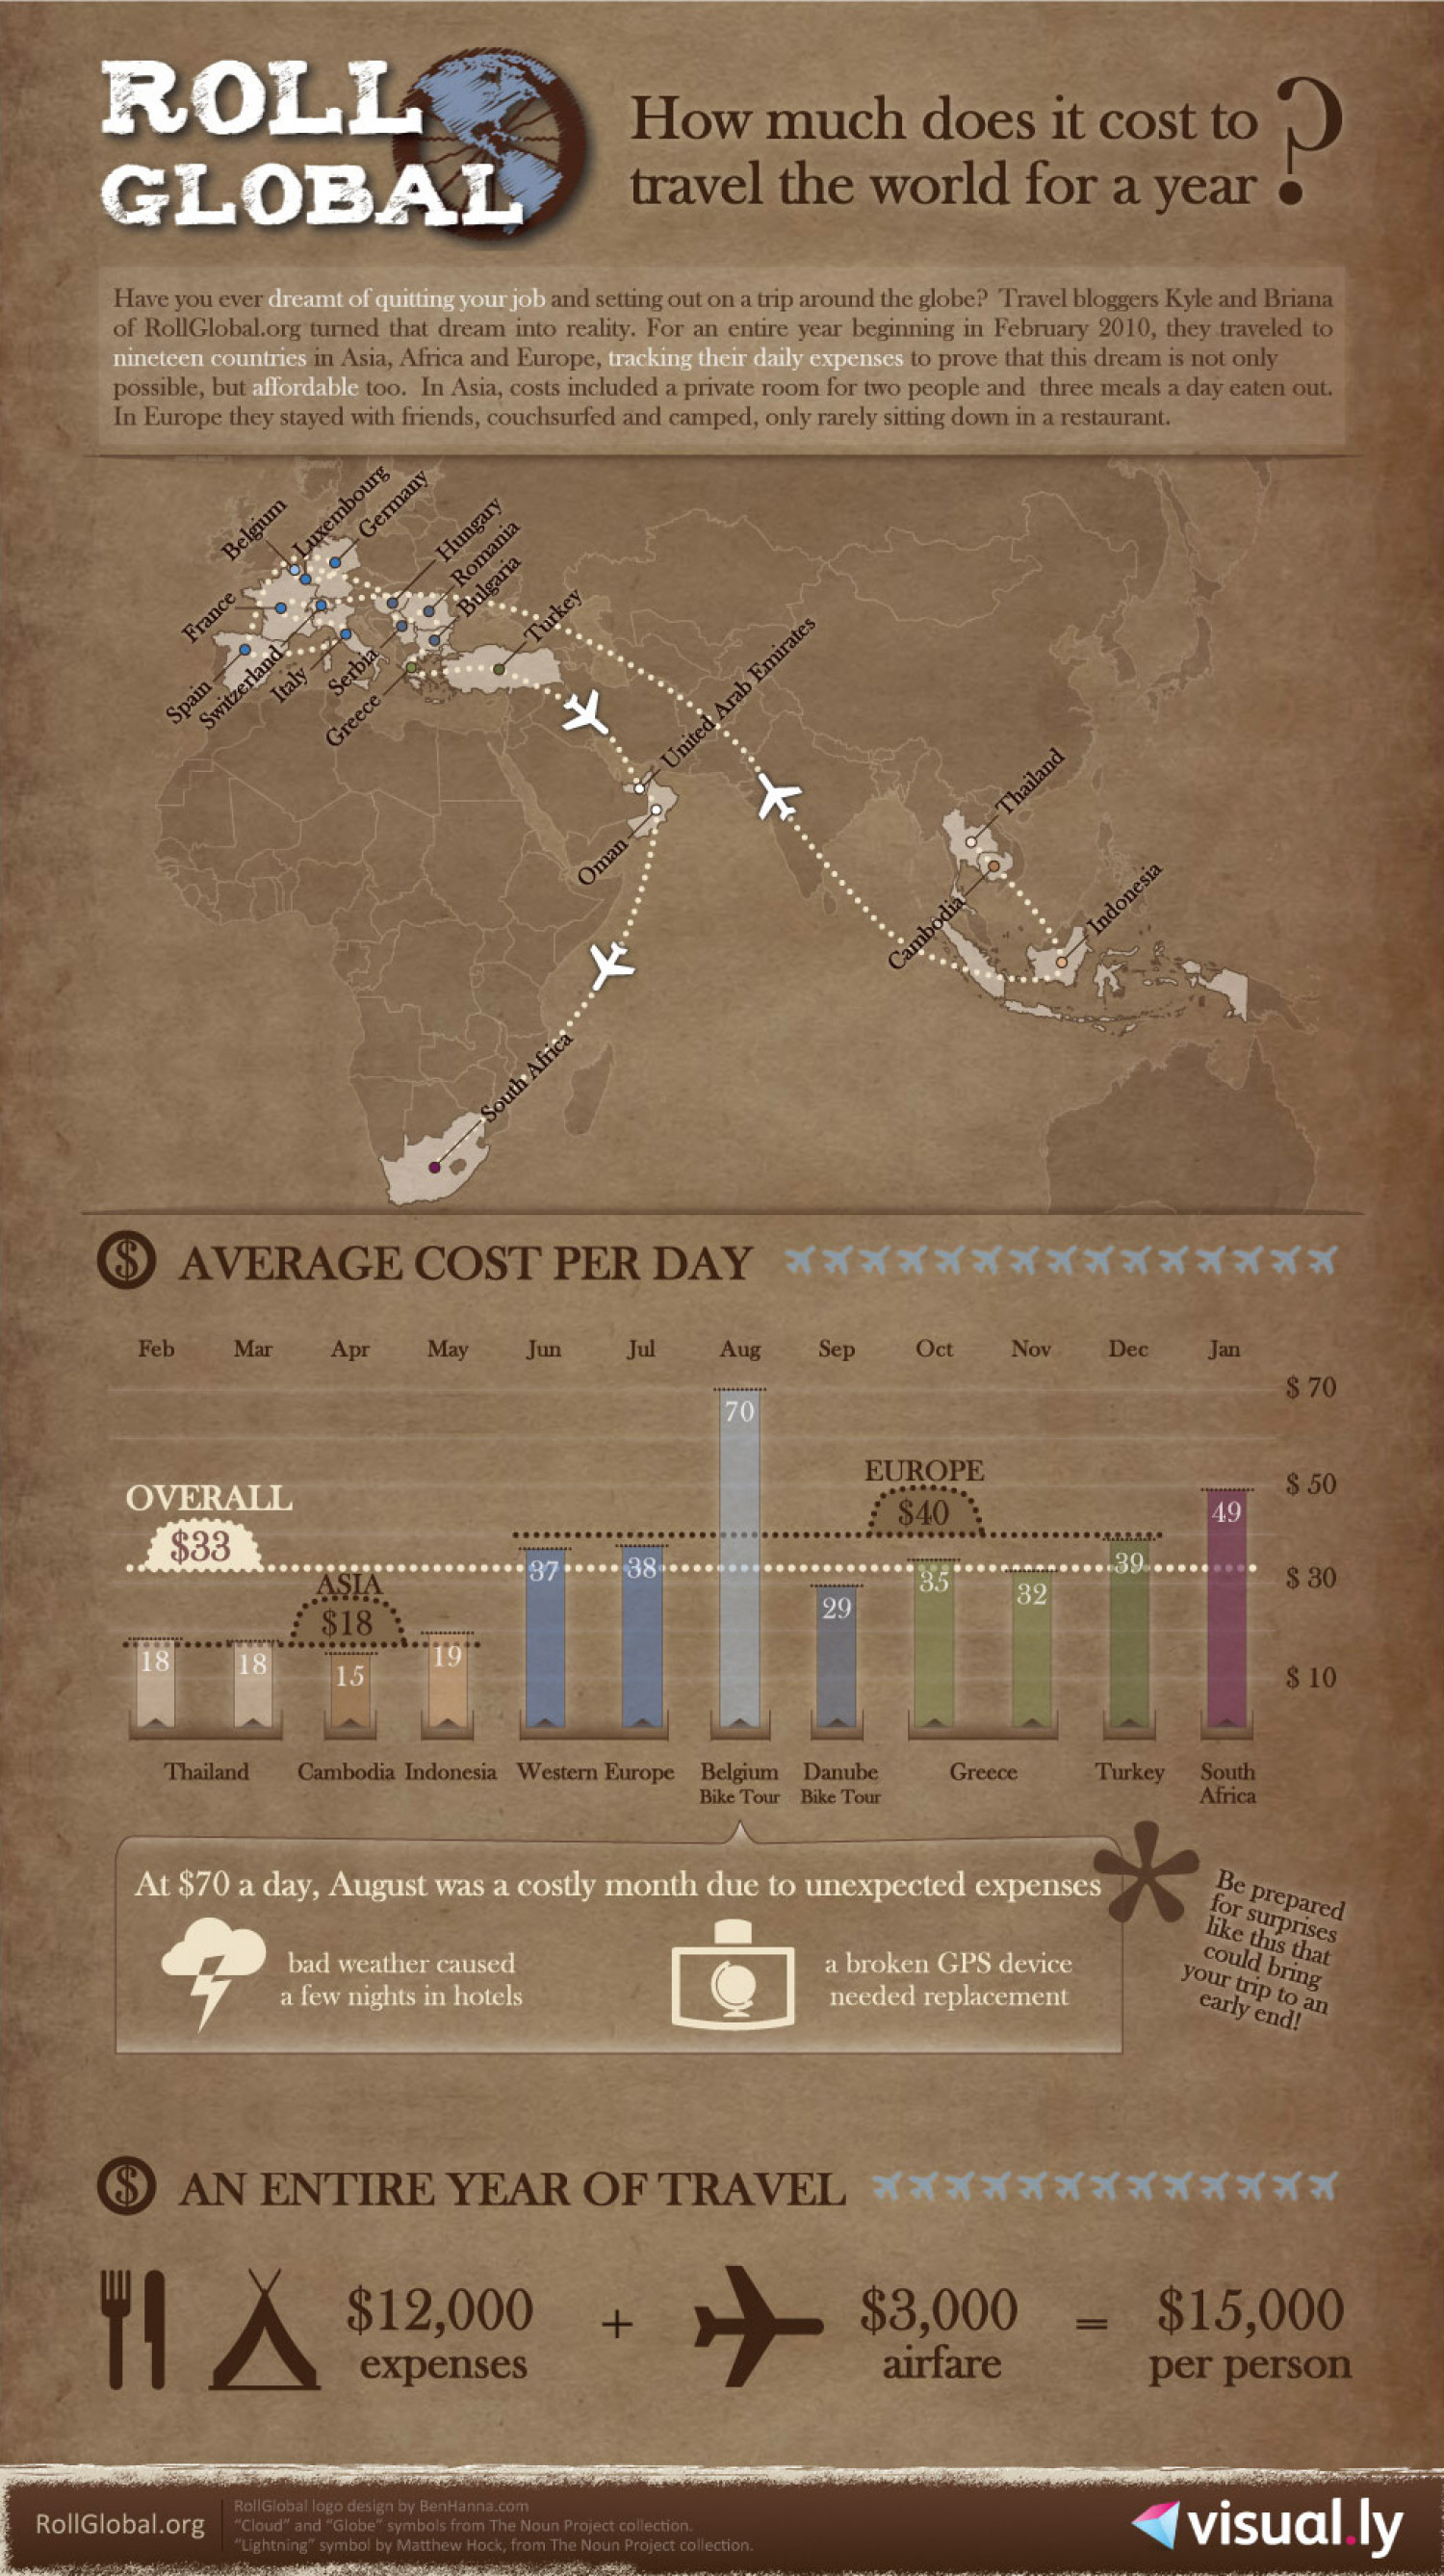 How Much Does It Cost to Travel The World For a Year?